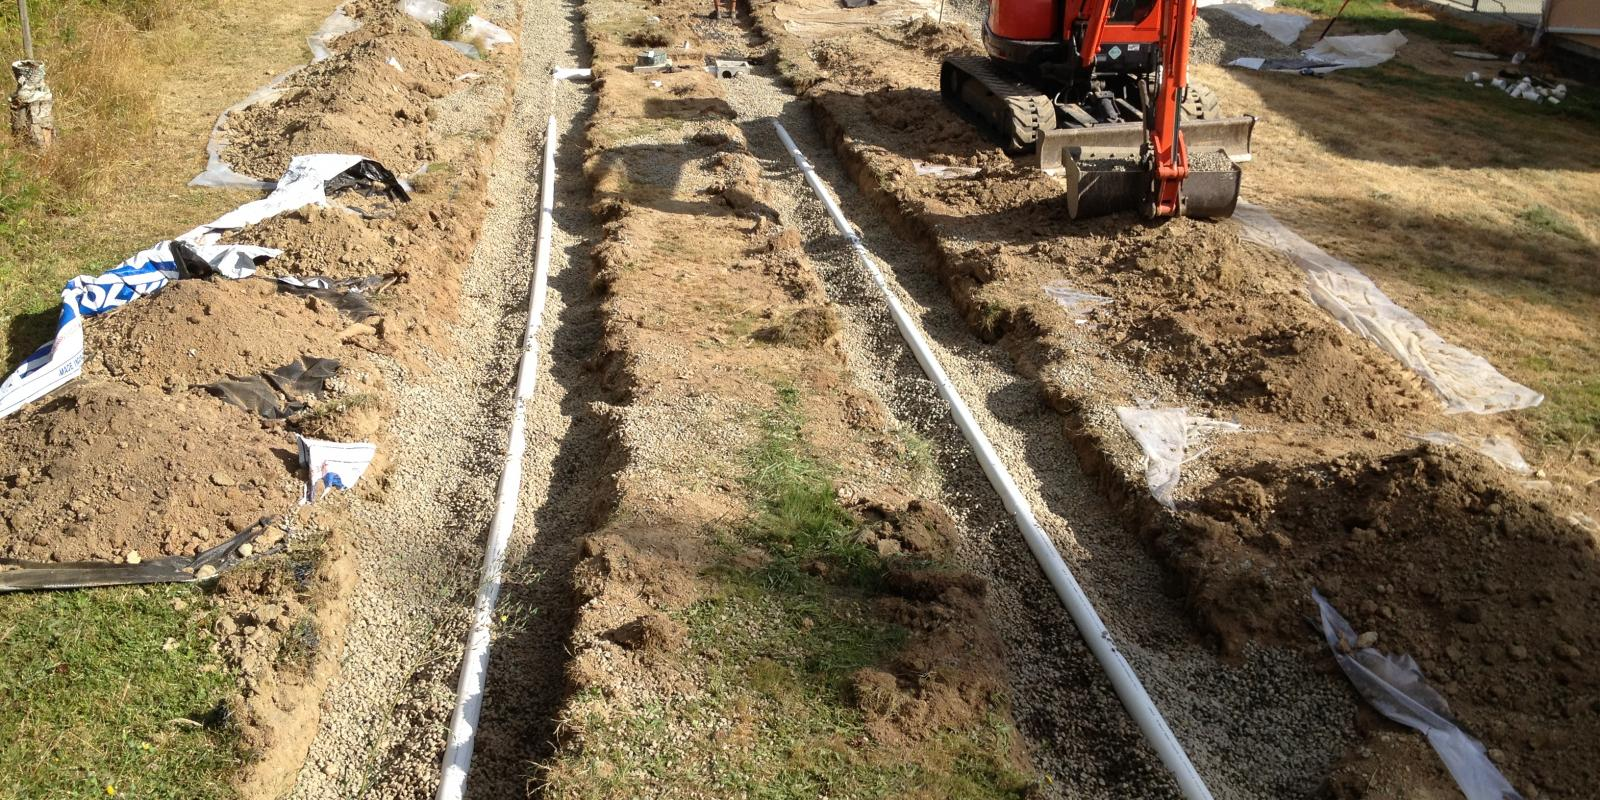 New septic field construction